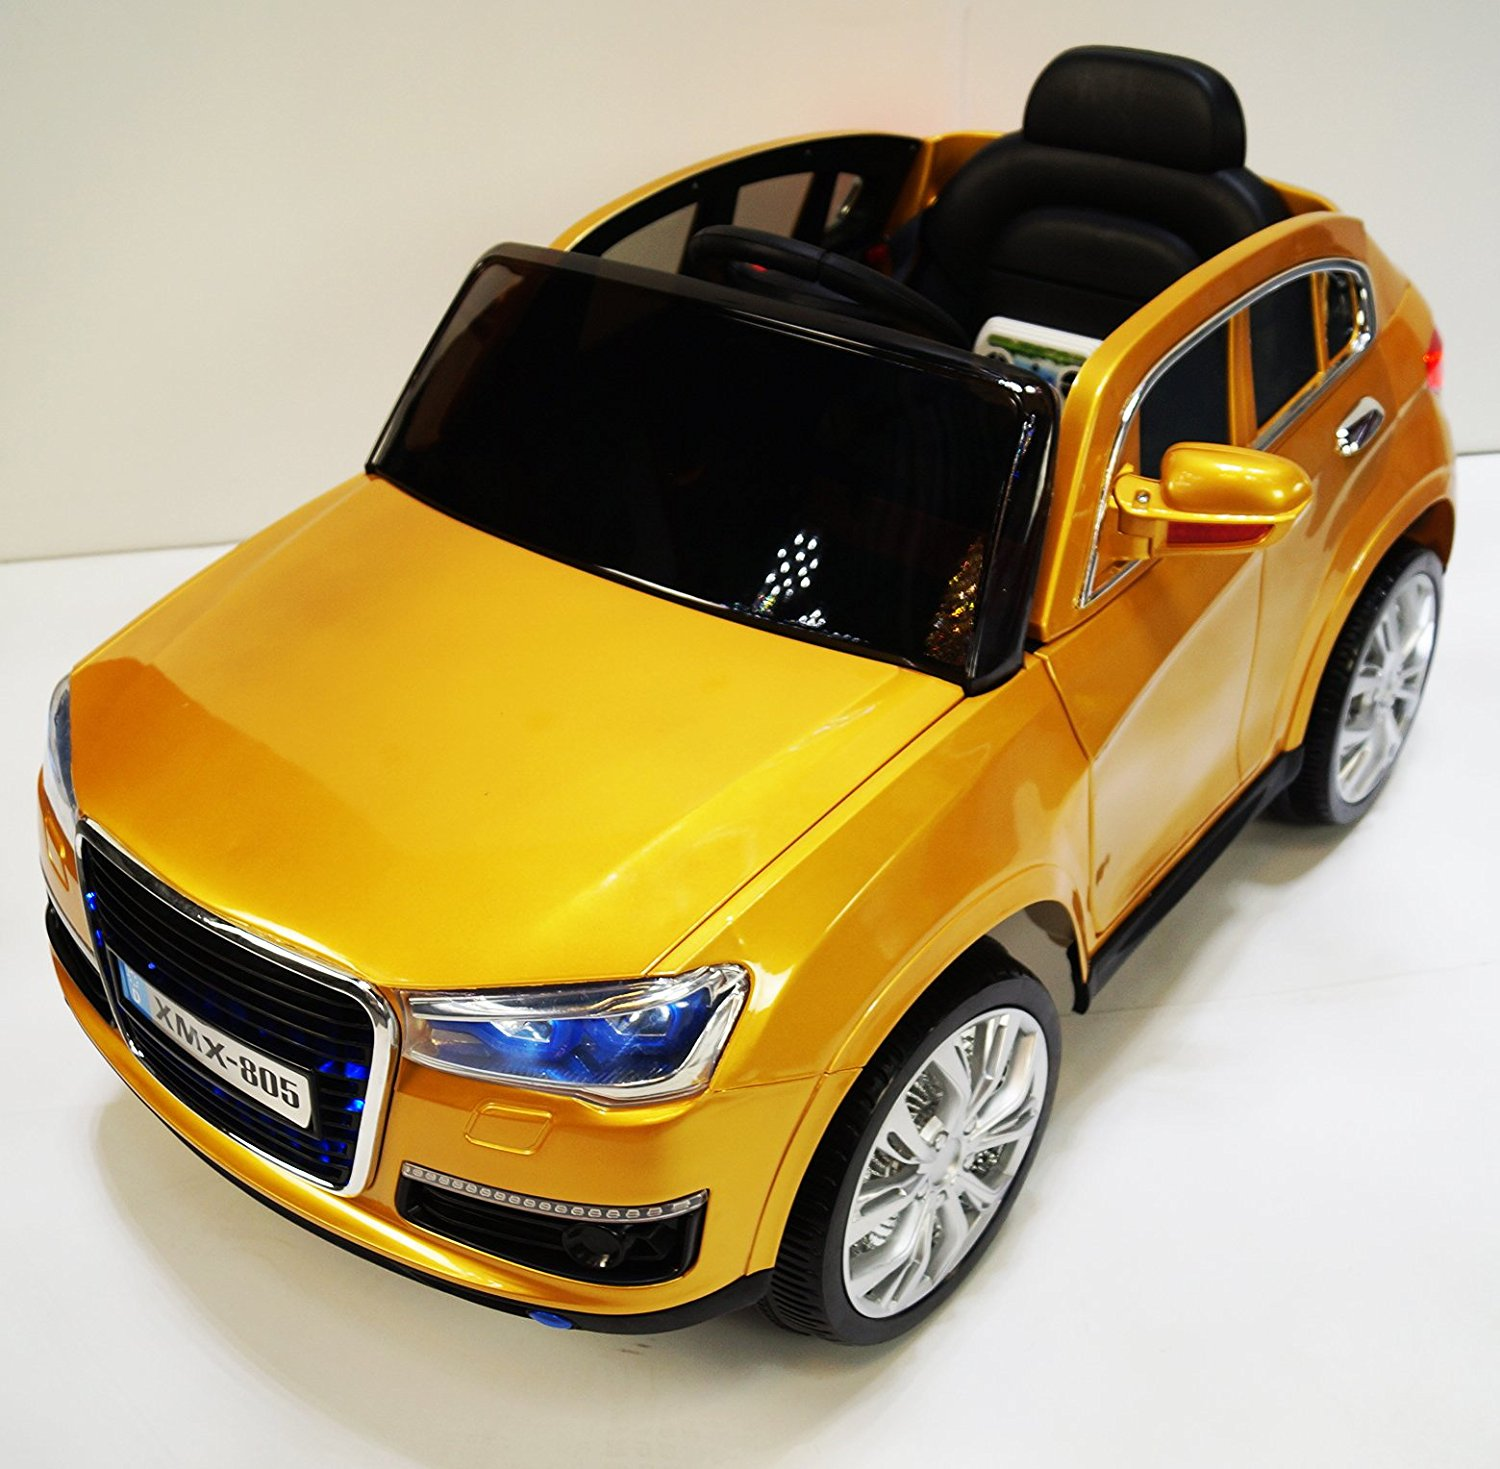 ELECTRIC CAR for kids. AUDI style. RIDE on CAR for kids with remote control to drive. Battery operated, 12V total. 2-7 years.